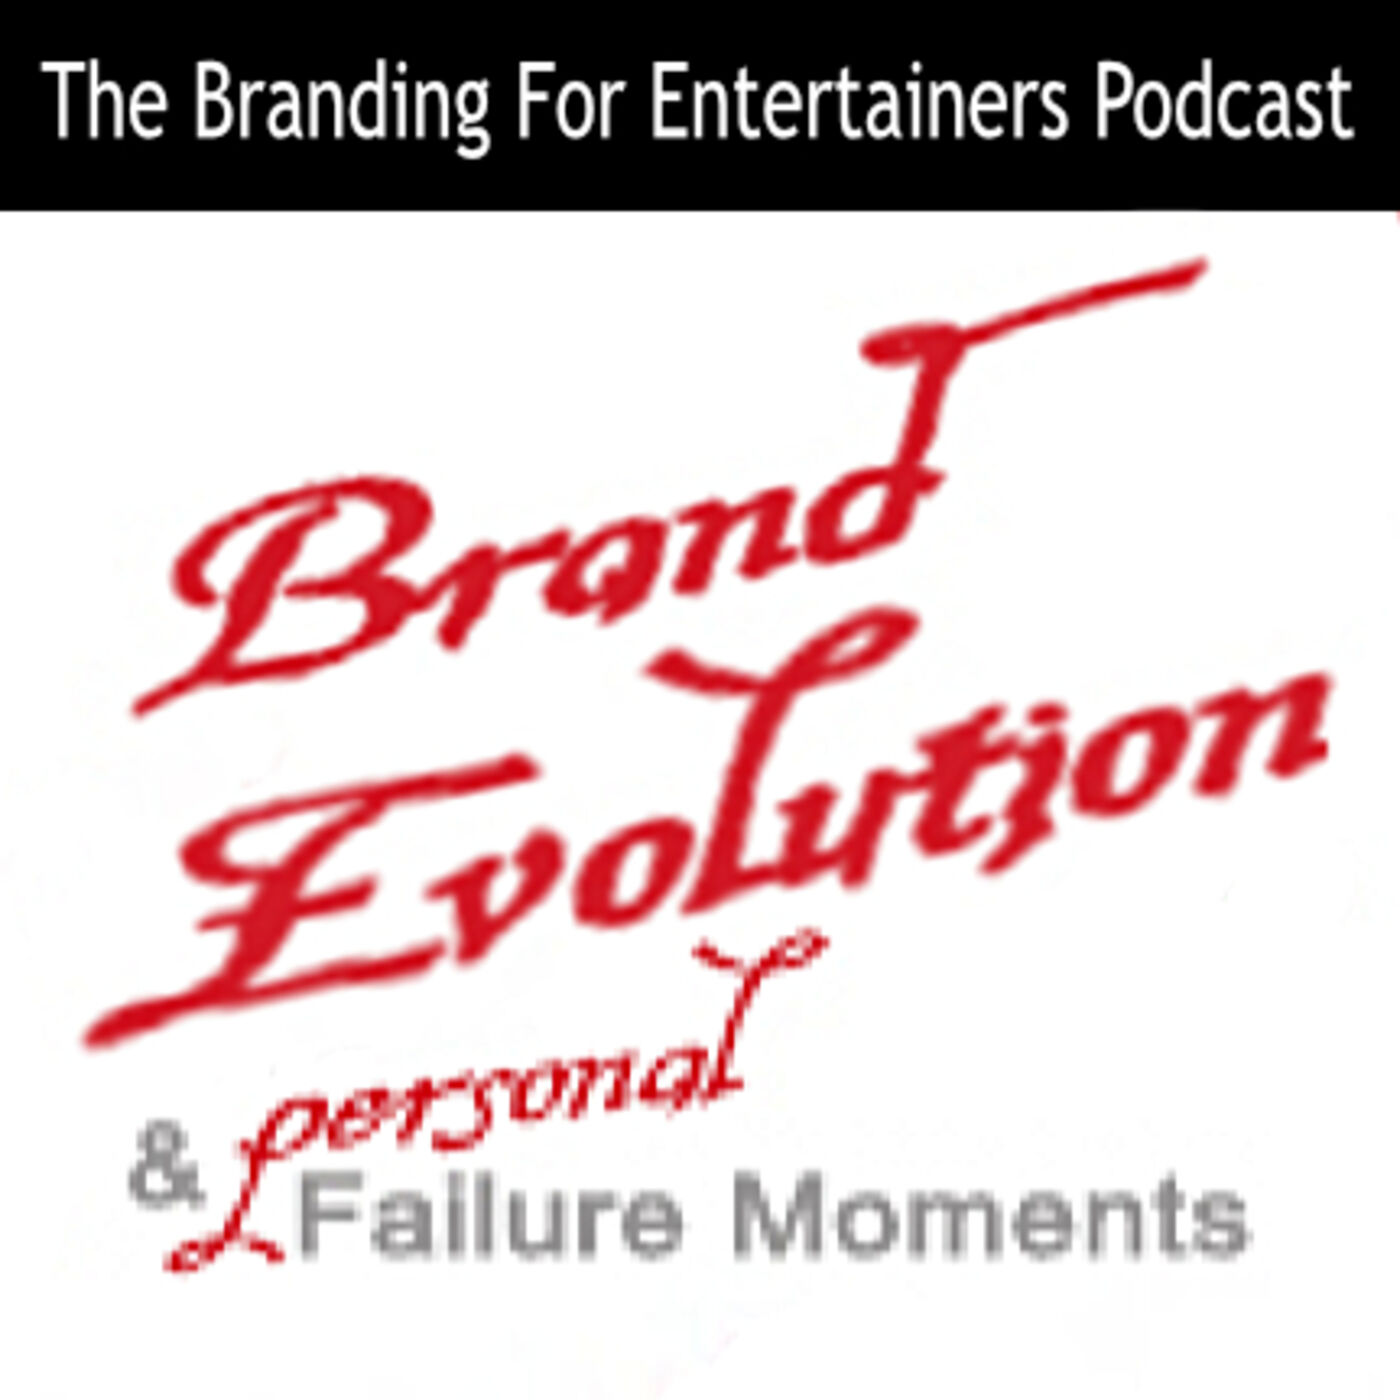 BFE EP02: Brand Evolution & Failure Moments (Part 2 of 3)